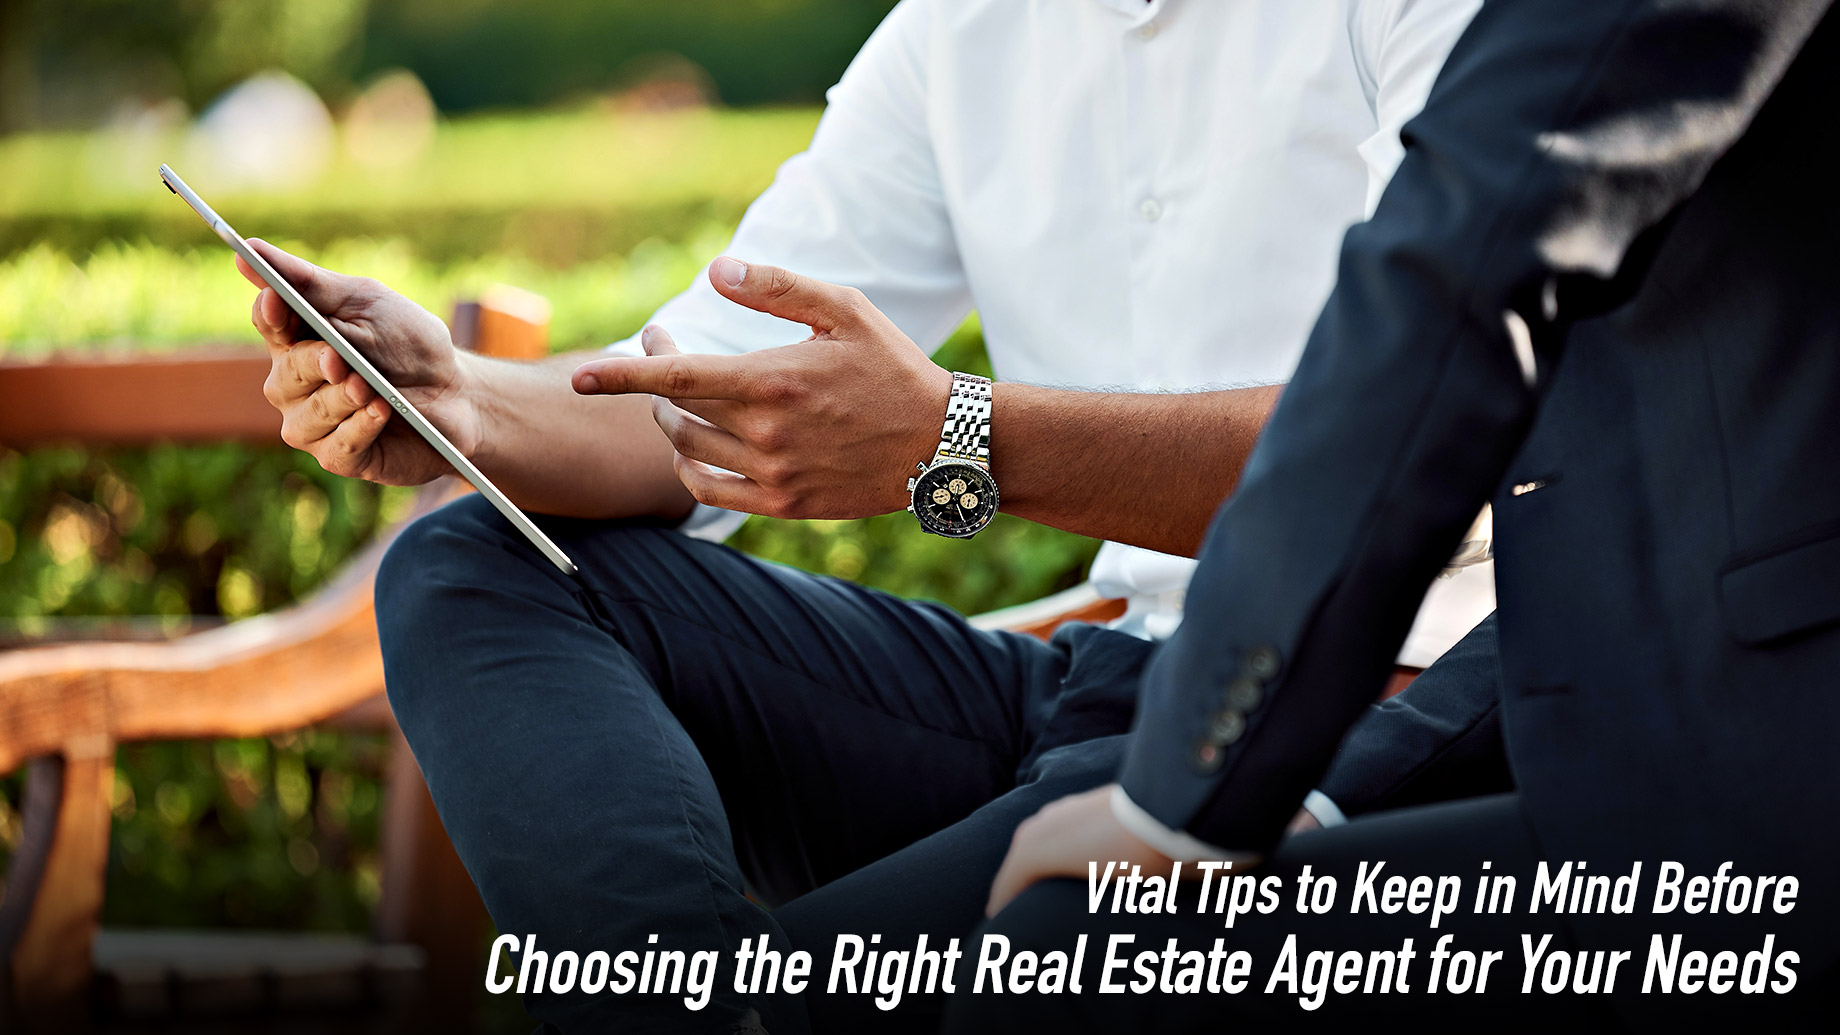 Vital Tips to Keep in Mind Before Choosing the Right Real Estate Agent for Your Needs